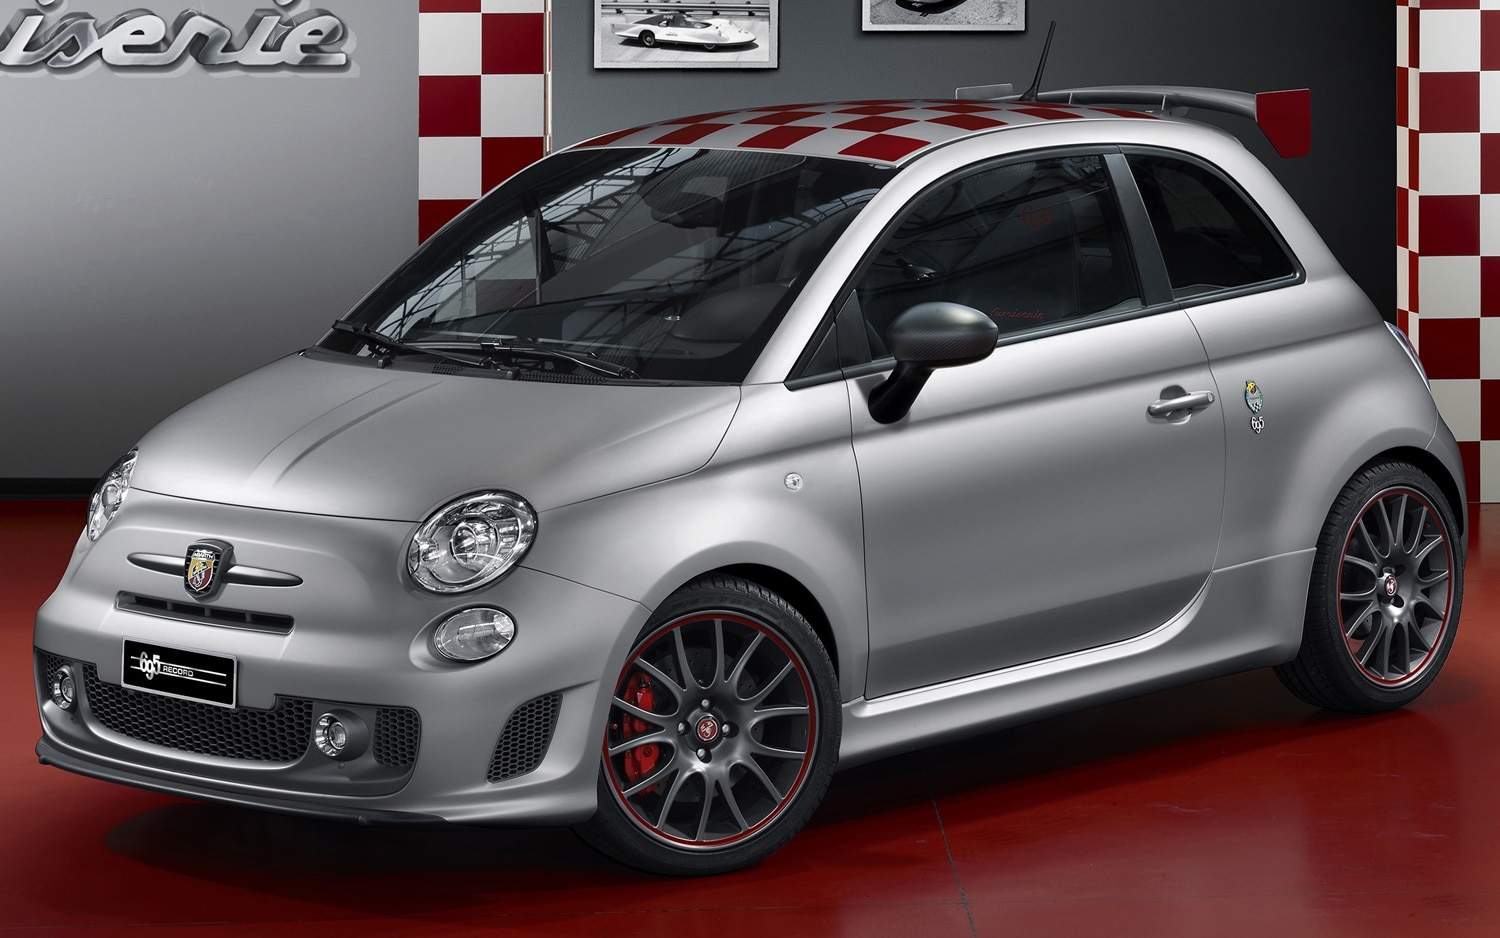 Fiat 500 Abarth 695 Record Front Side View1